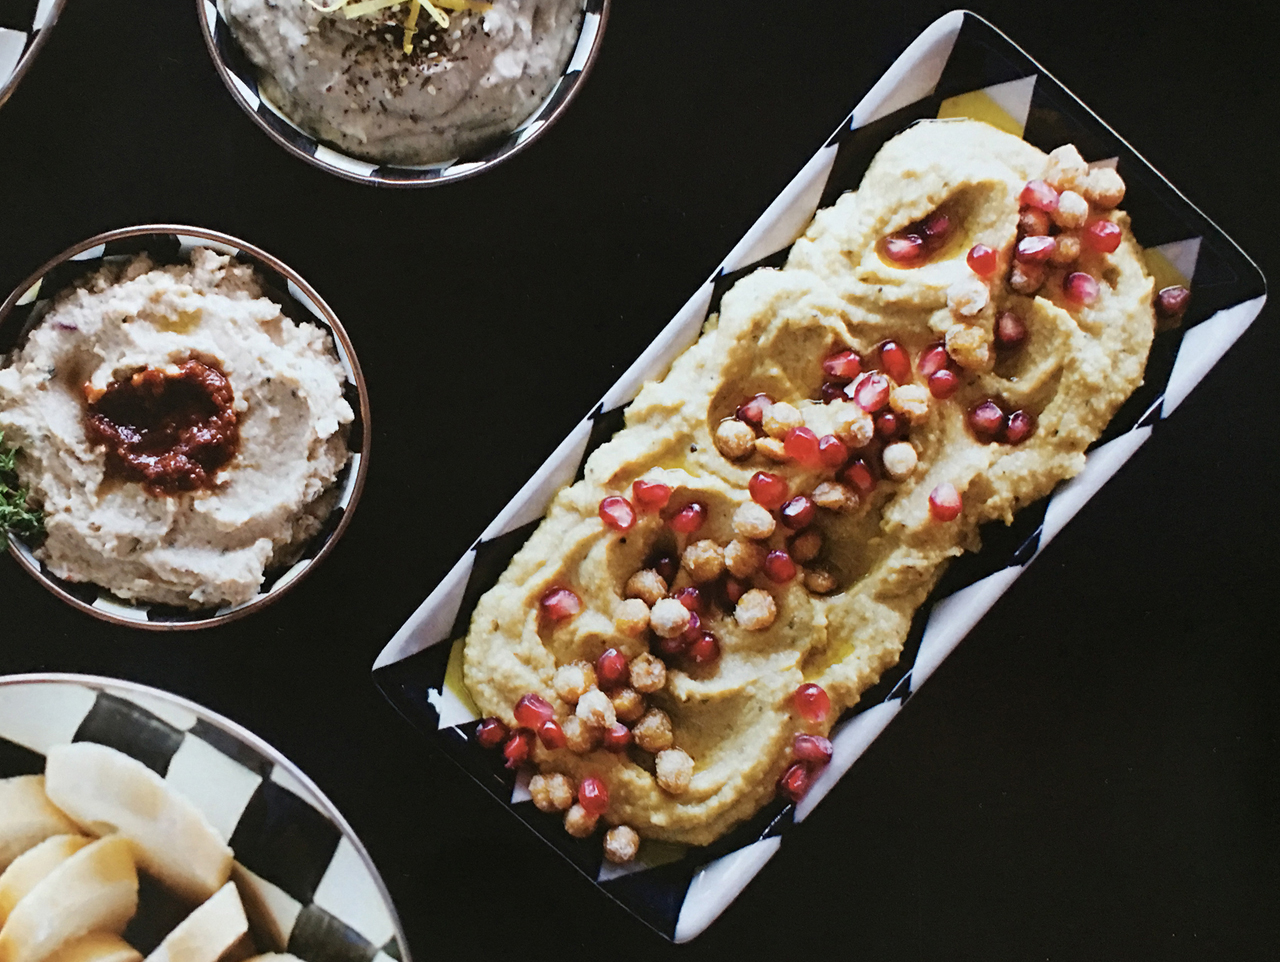 Spicy Hummus with Crispy Chickpeas